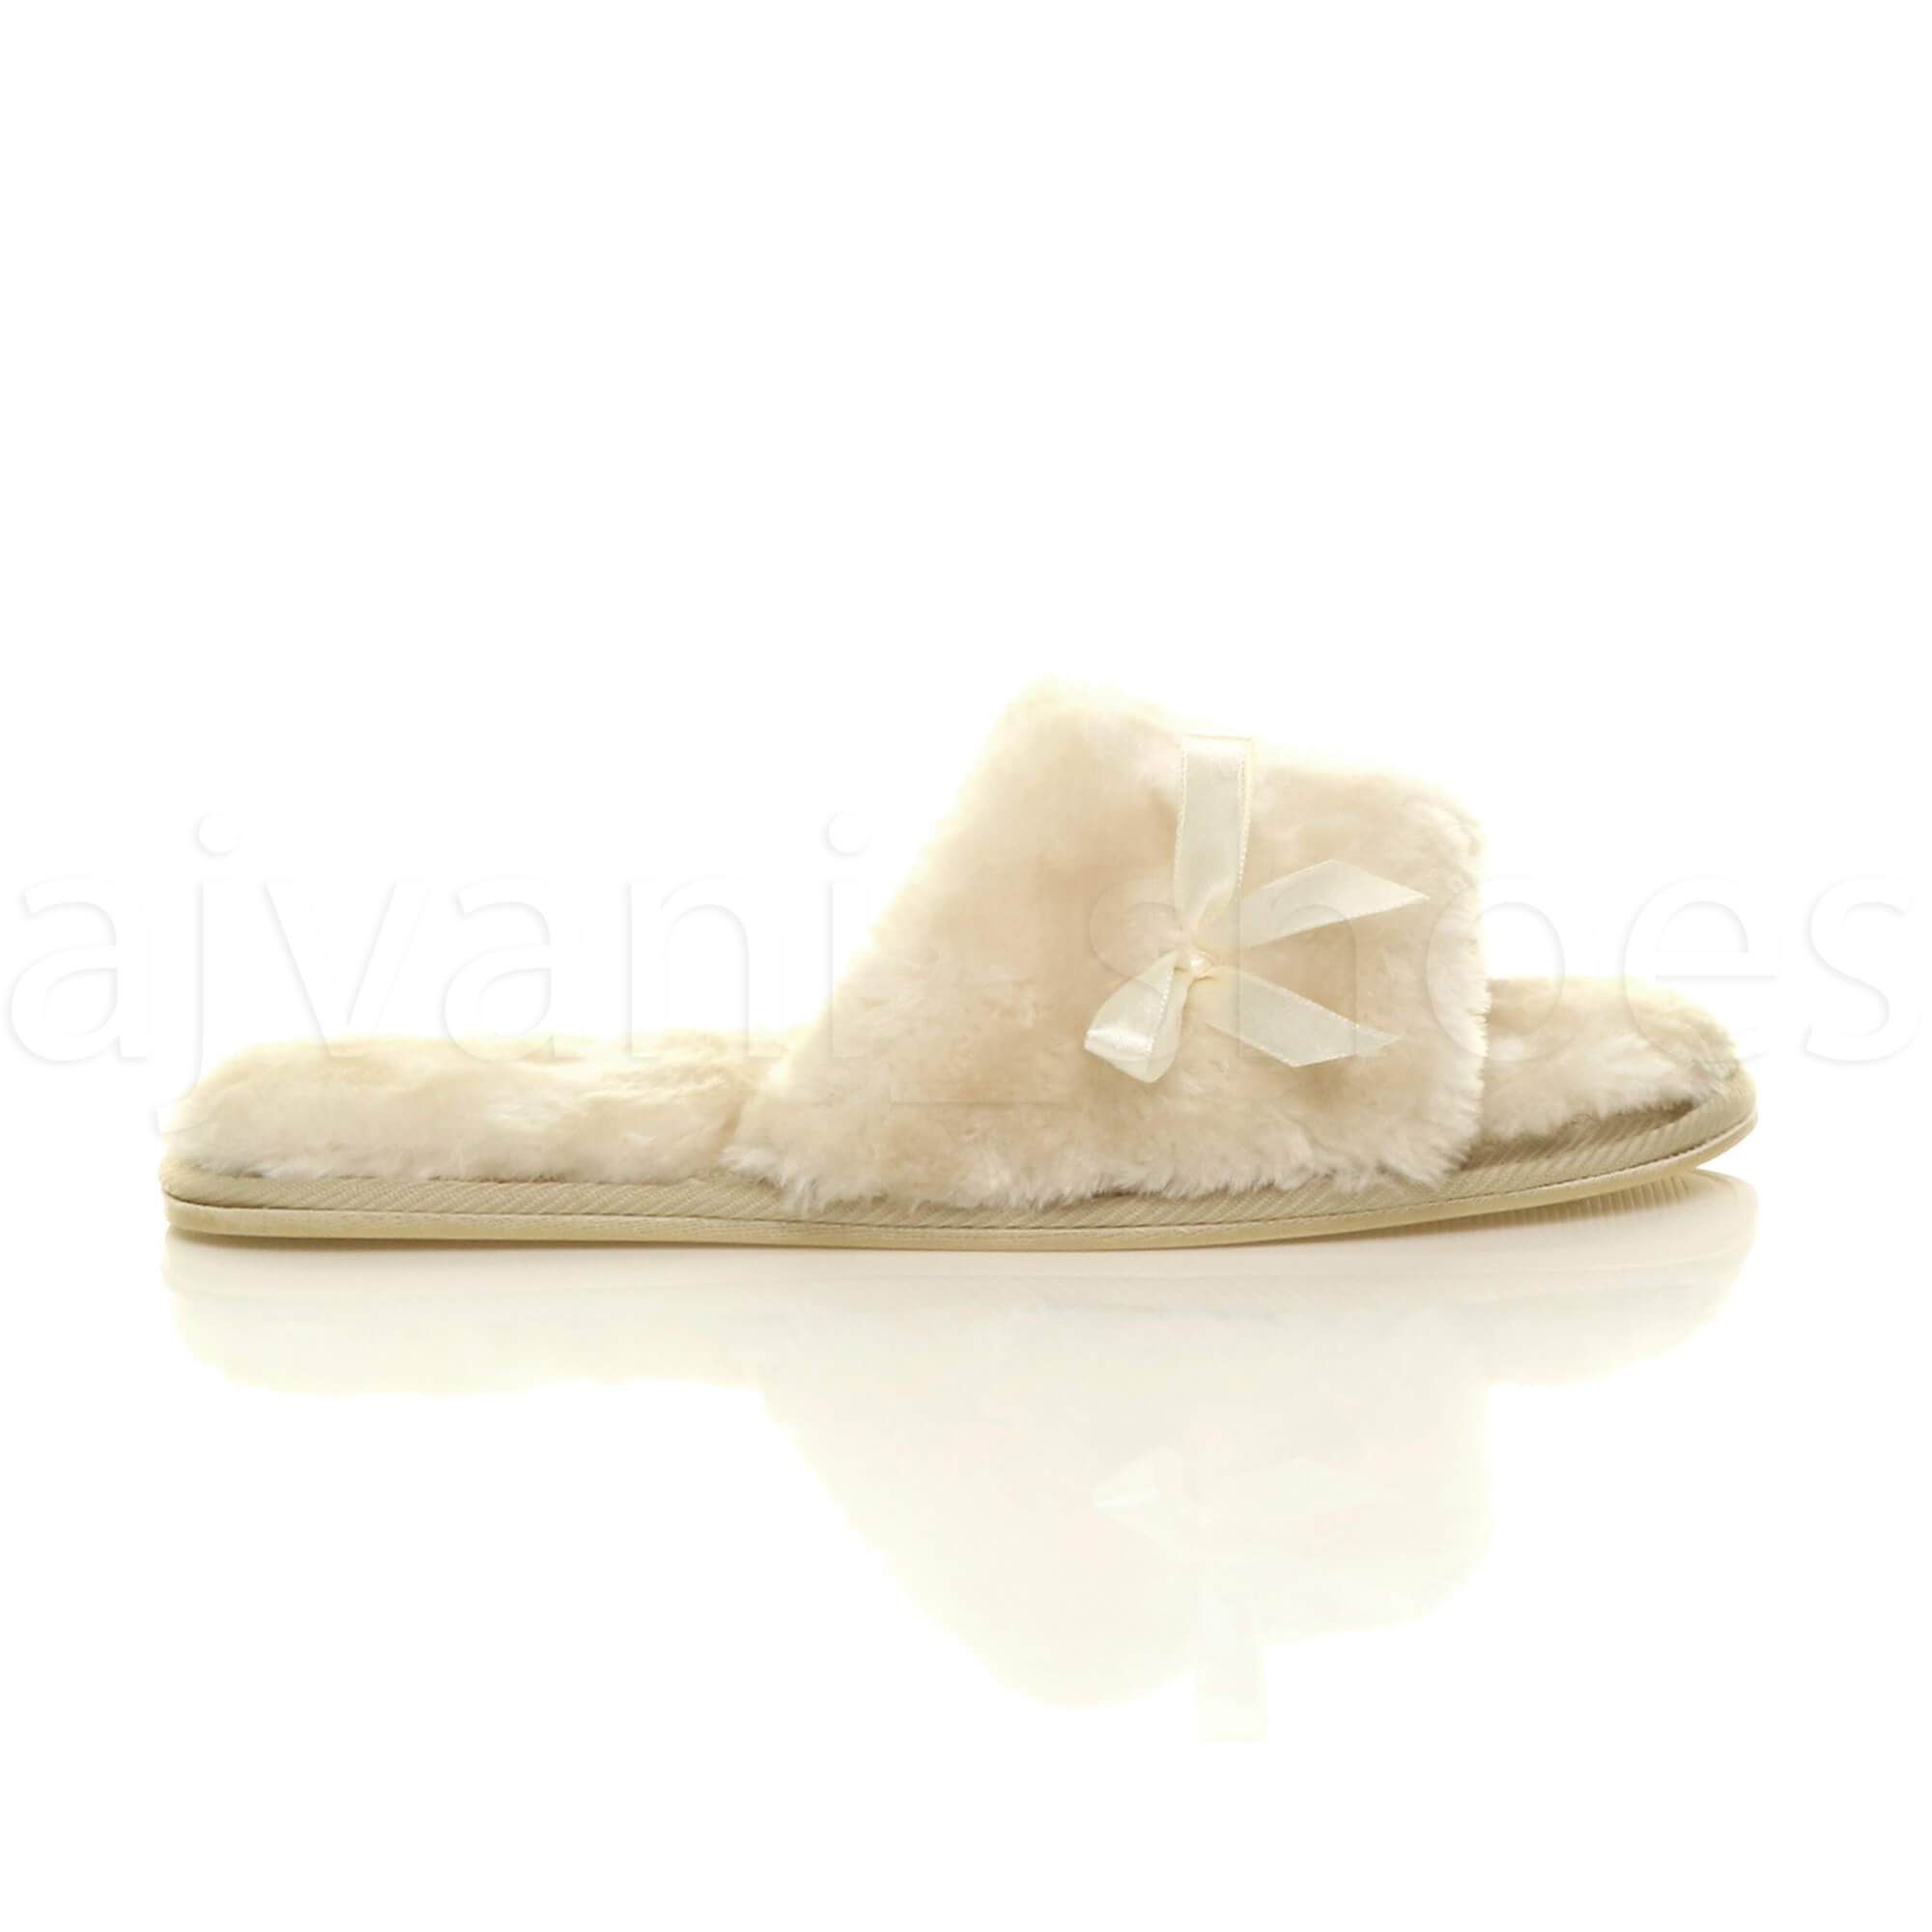 WOMENS-LADIES-FLAT-PEEP-TOE-BOW-LUXURY-COSY-FUR-LINED-SLIP-ON-SLIPPERS-SIZE thumbnail 3